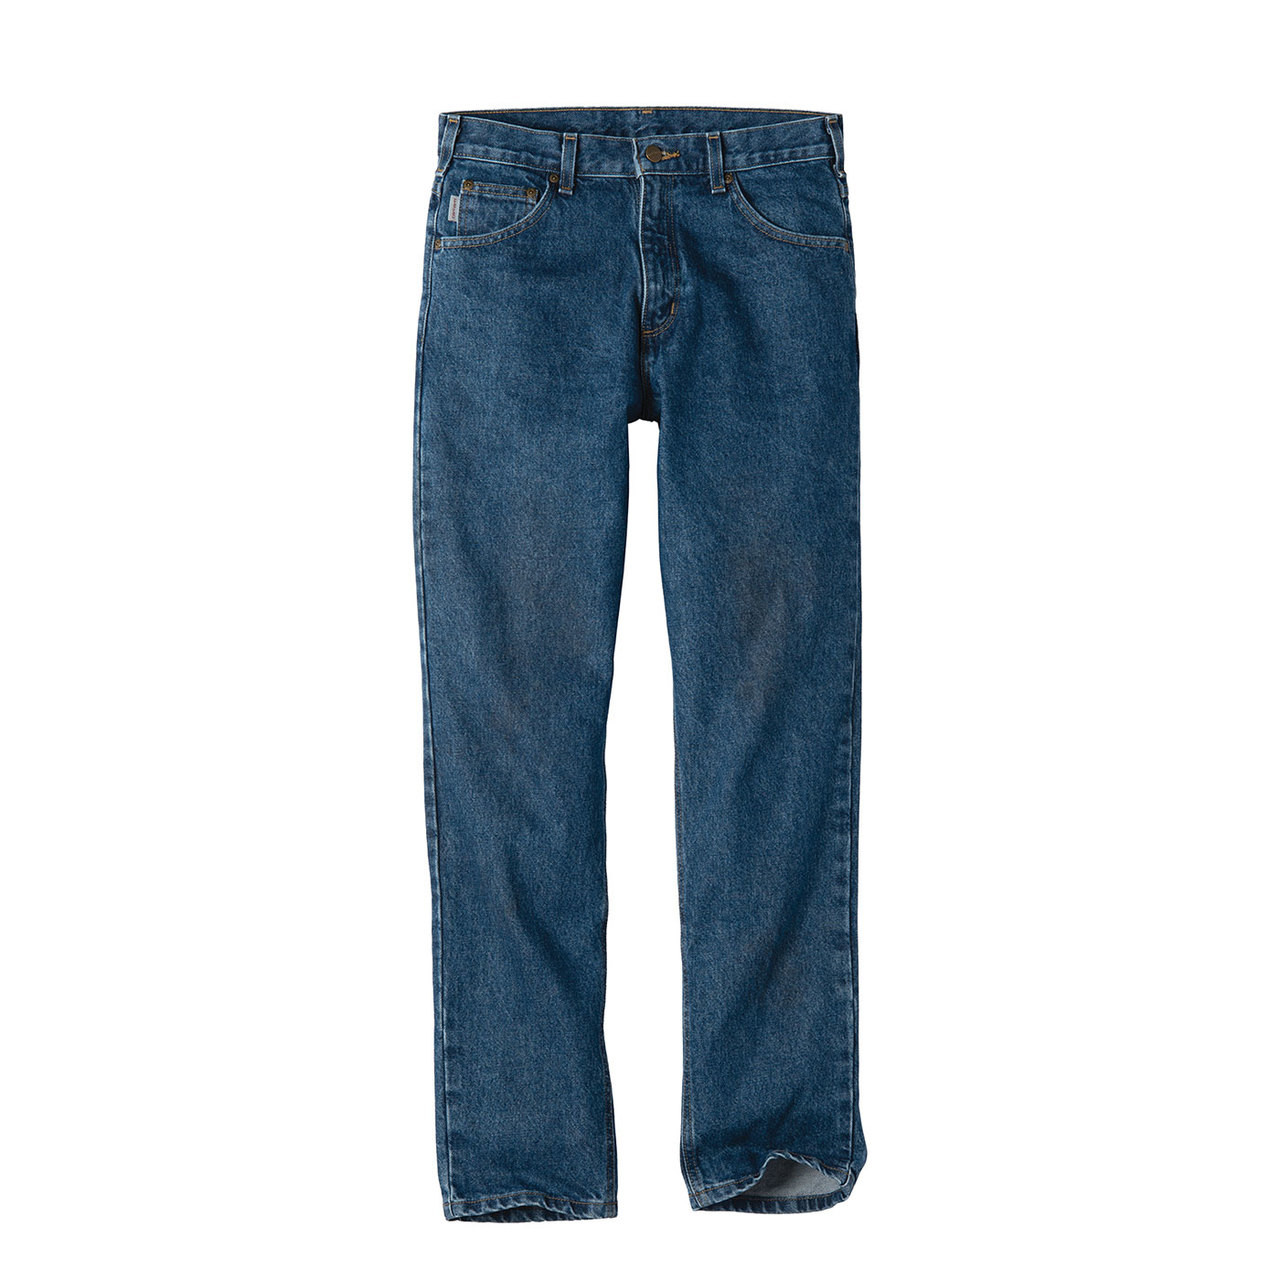 cb5e667c Carhartt Tapered Leg Jeans Relaxed Fit B17 Darkstone Front